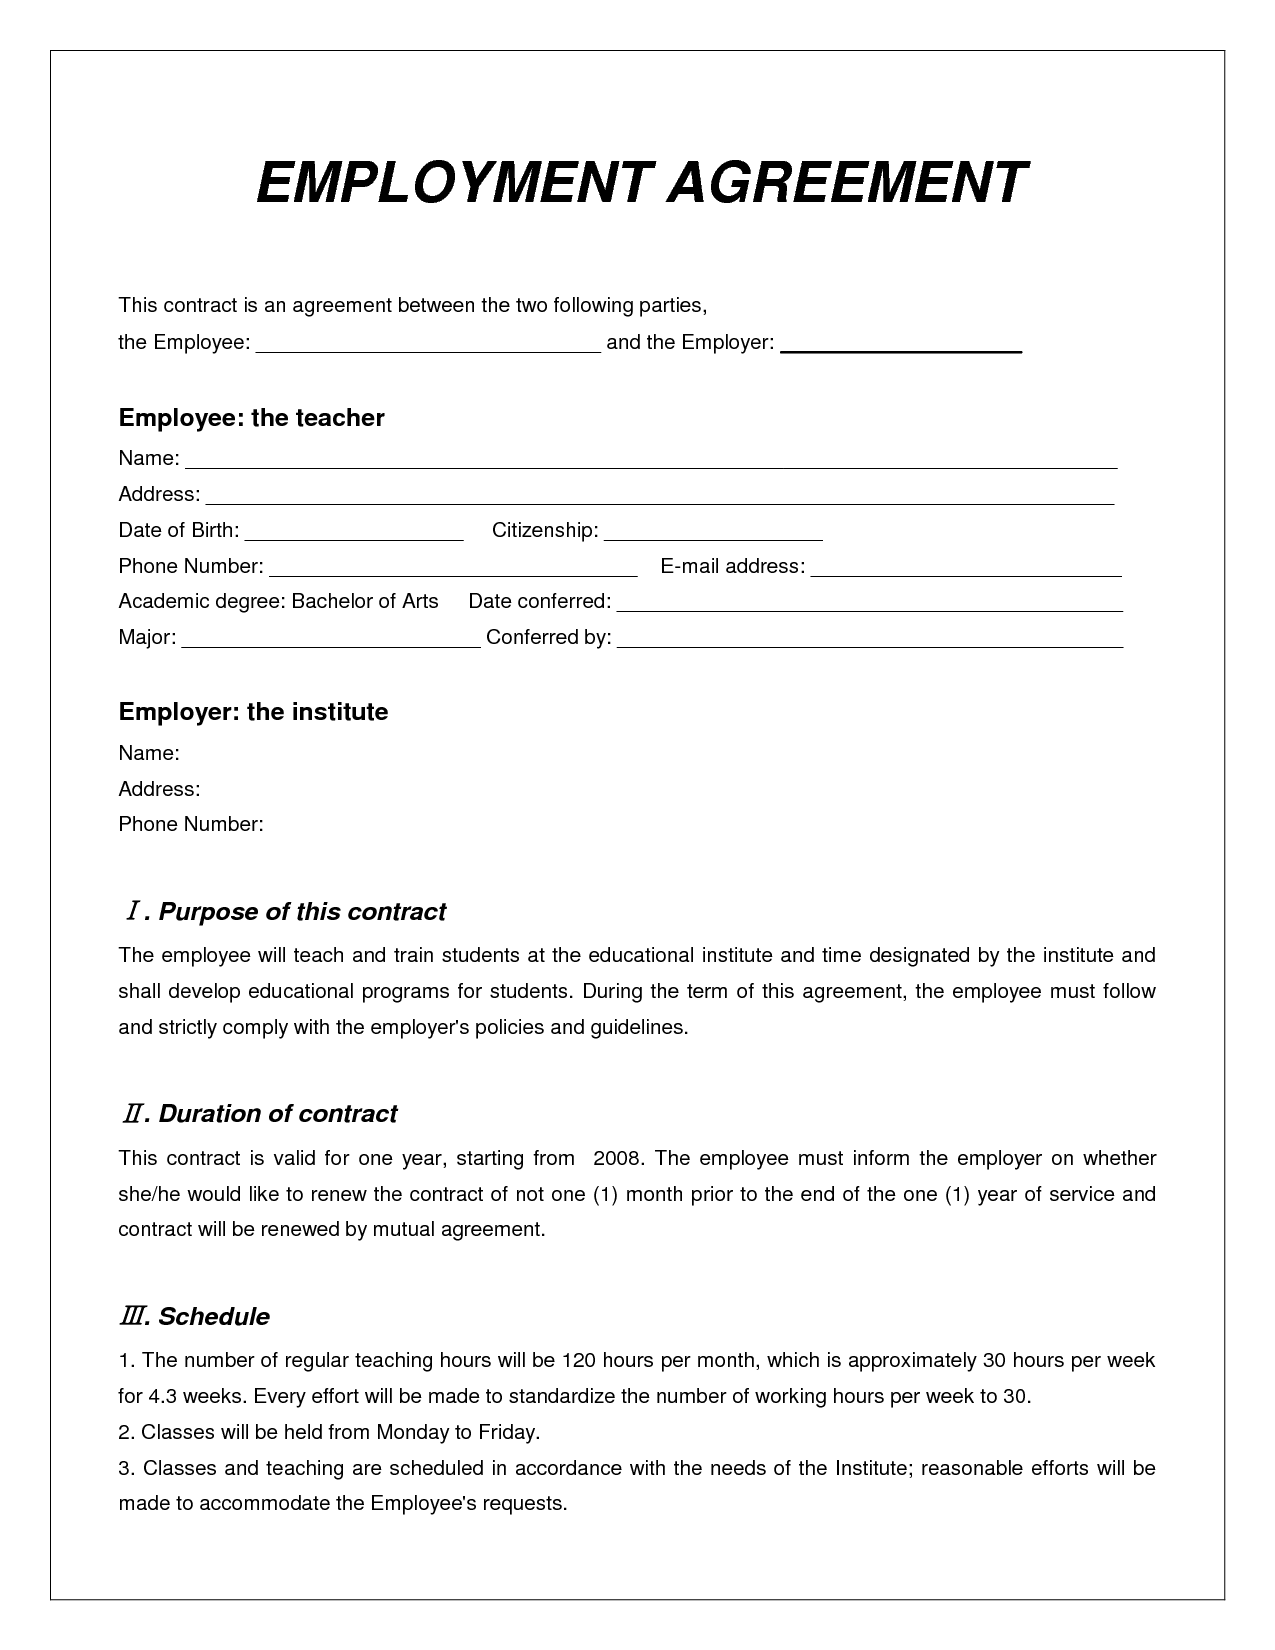 employment agreement contract   Teacheng.us